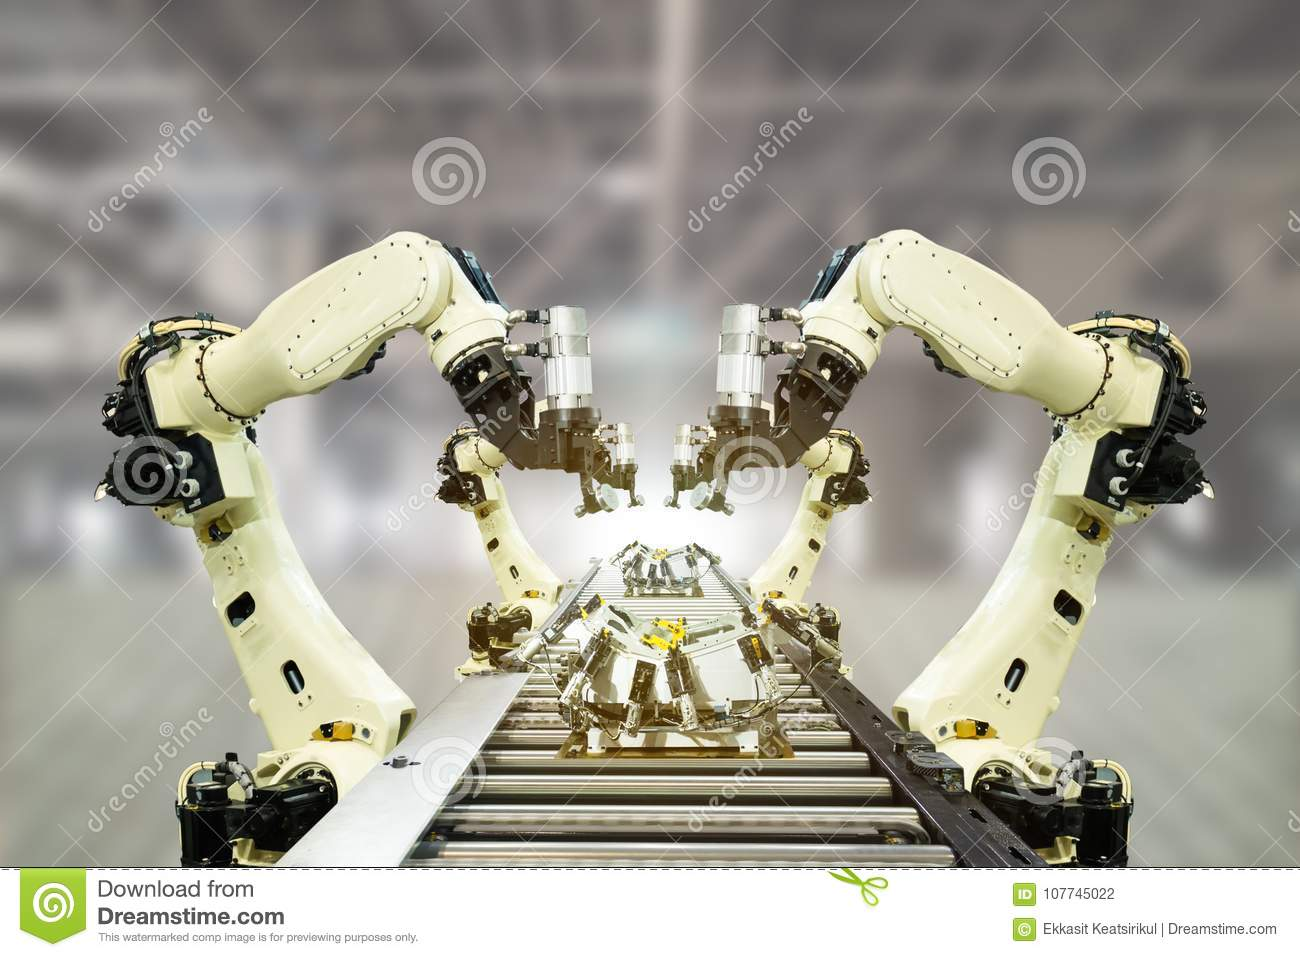 Iot industry 4.0 technology concept.Smart factory using trending automation robotic arms with empty conveyor belt in operation lin